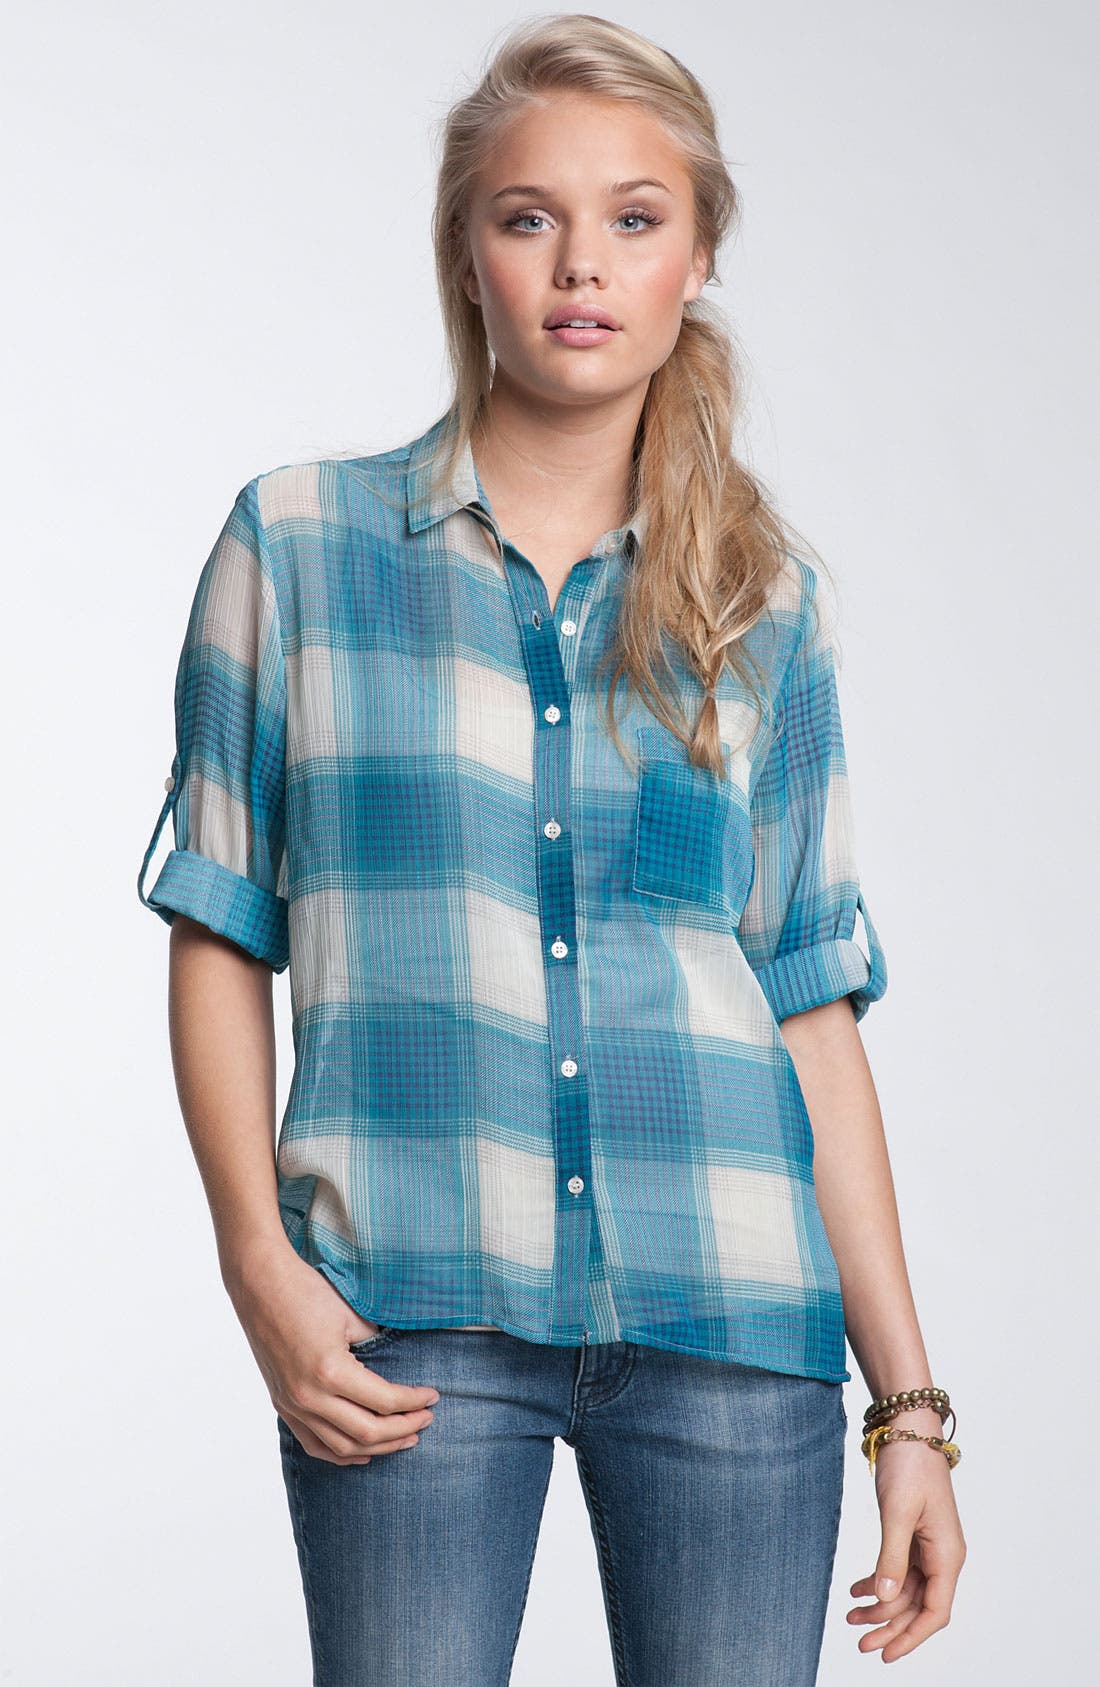 Alternate Image 1 Selected - Band of Gypsies Woven Plaid Shirt (Juniors)